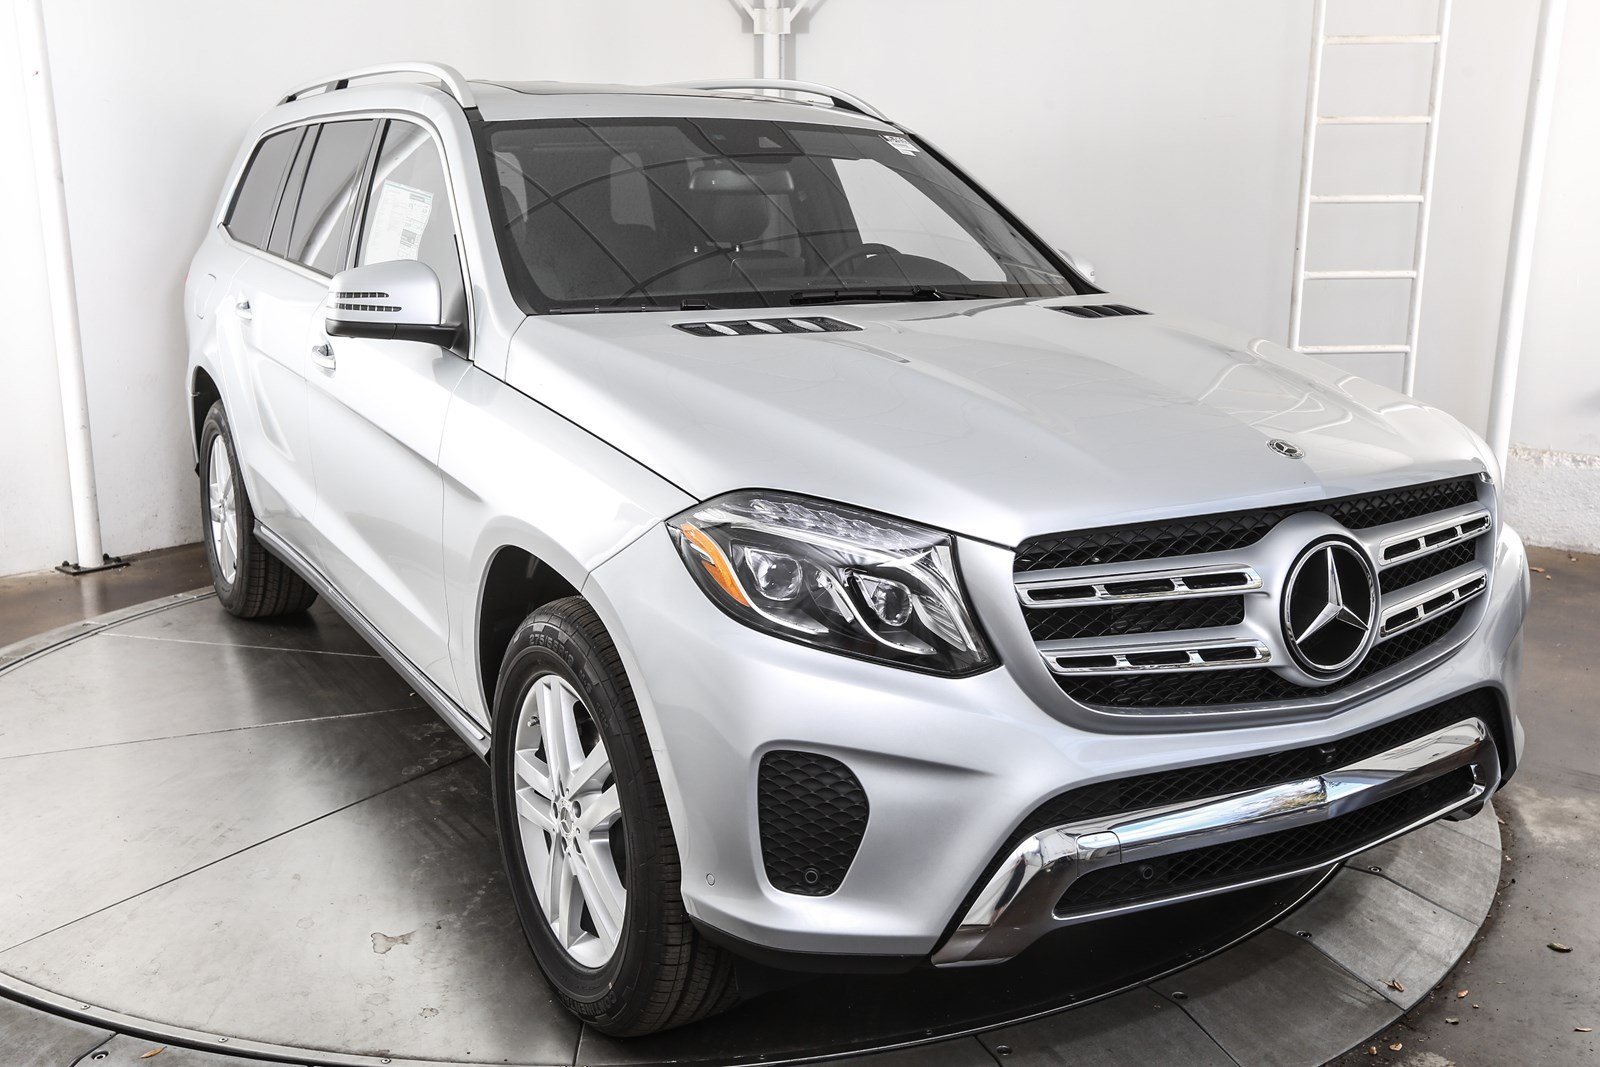 New 2018 mercedes benz gls gls 450 suv in austin m57859 for Mercedes benz 450